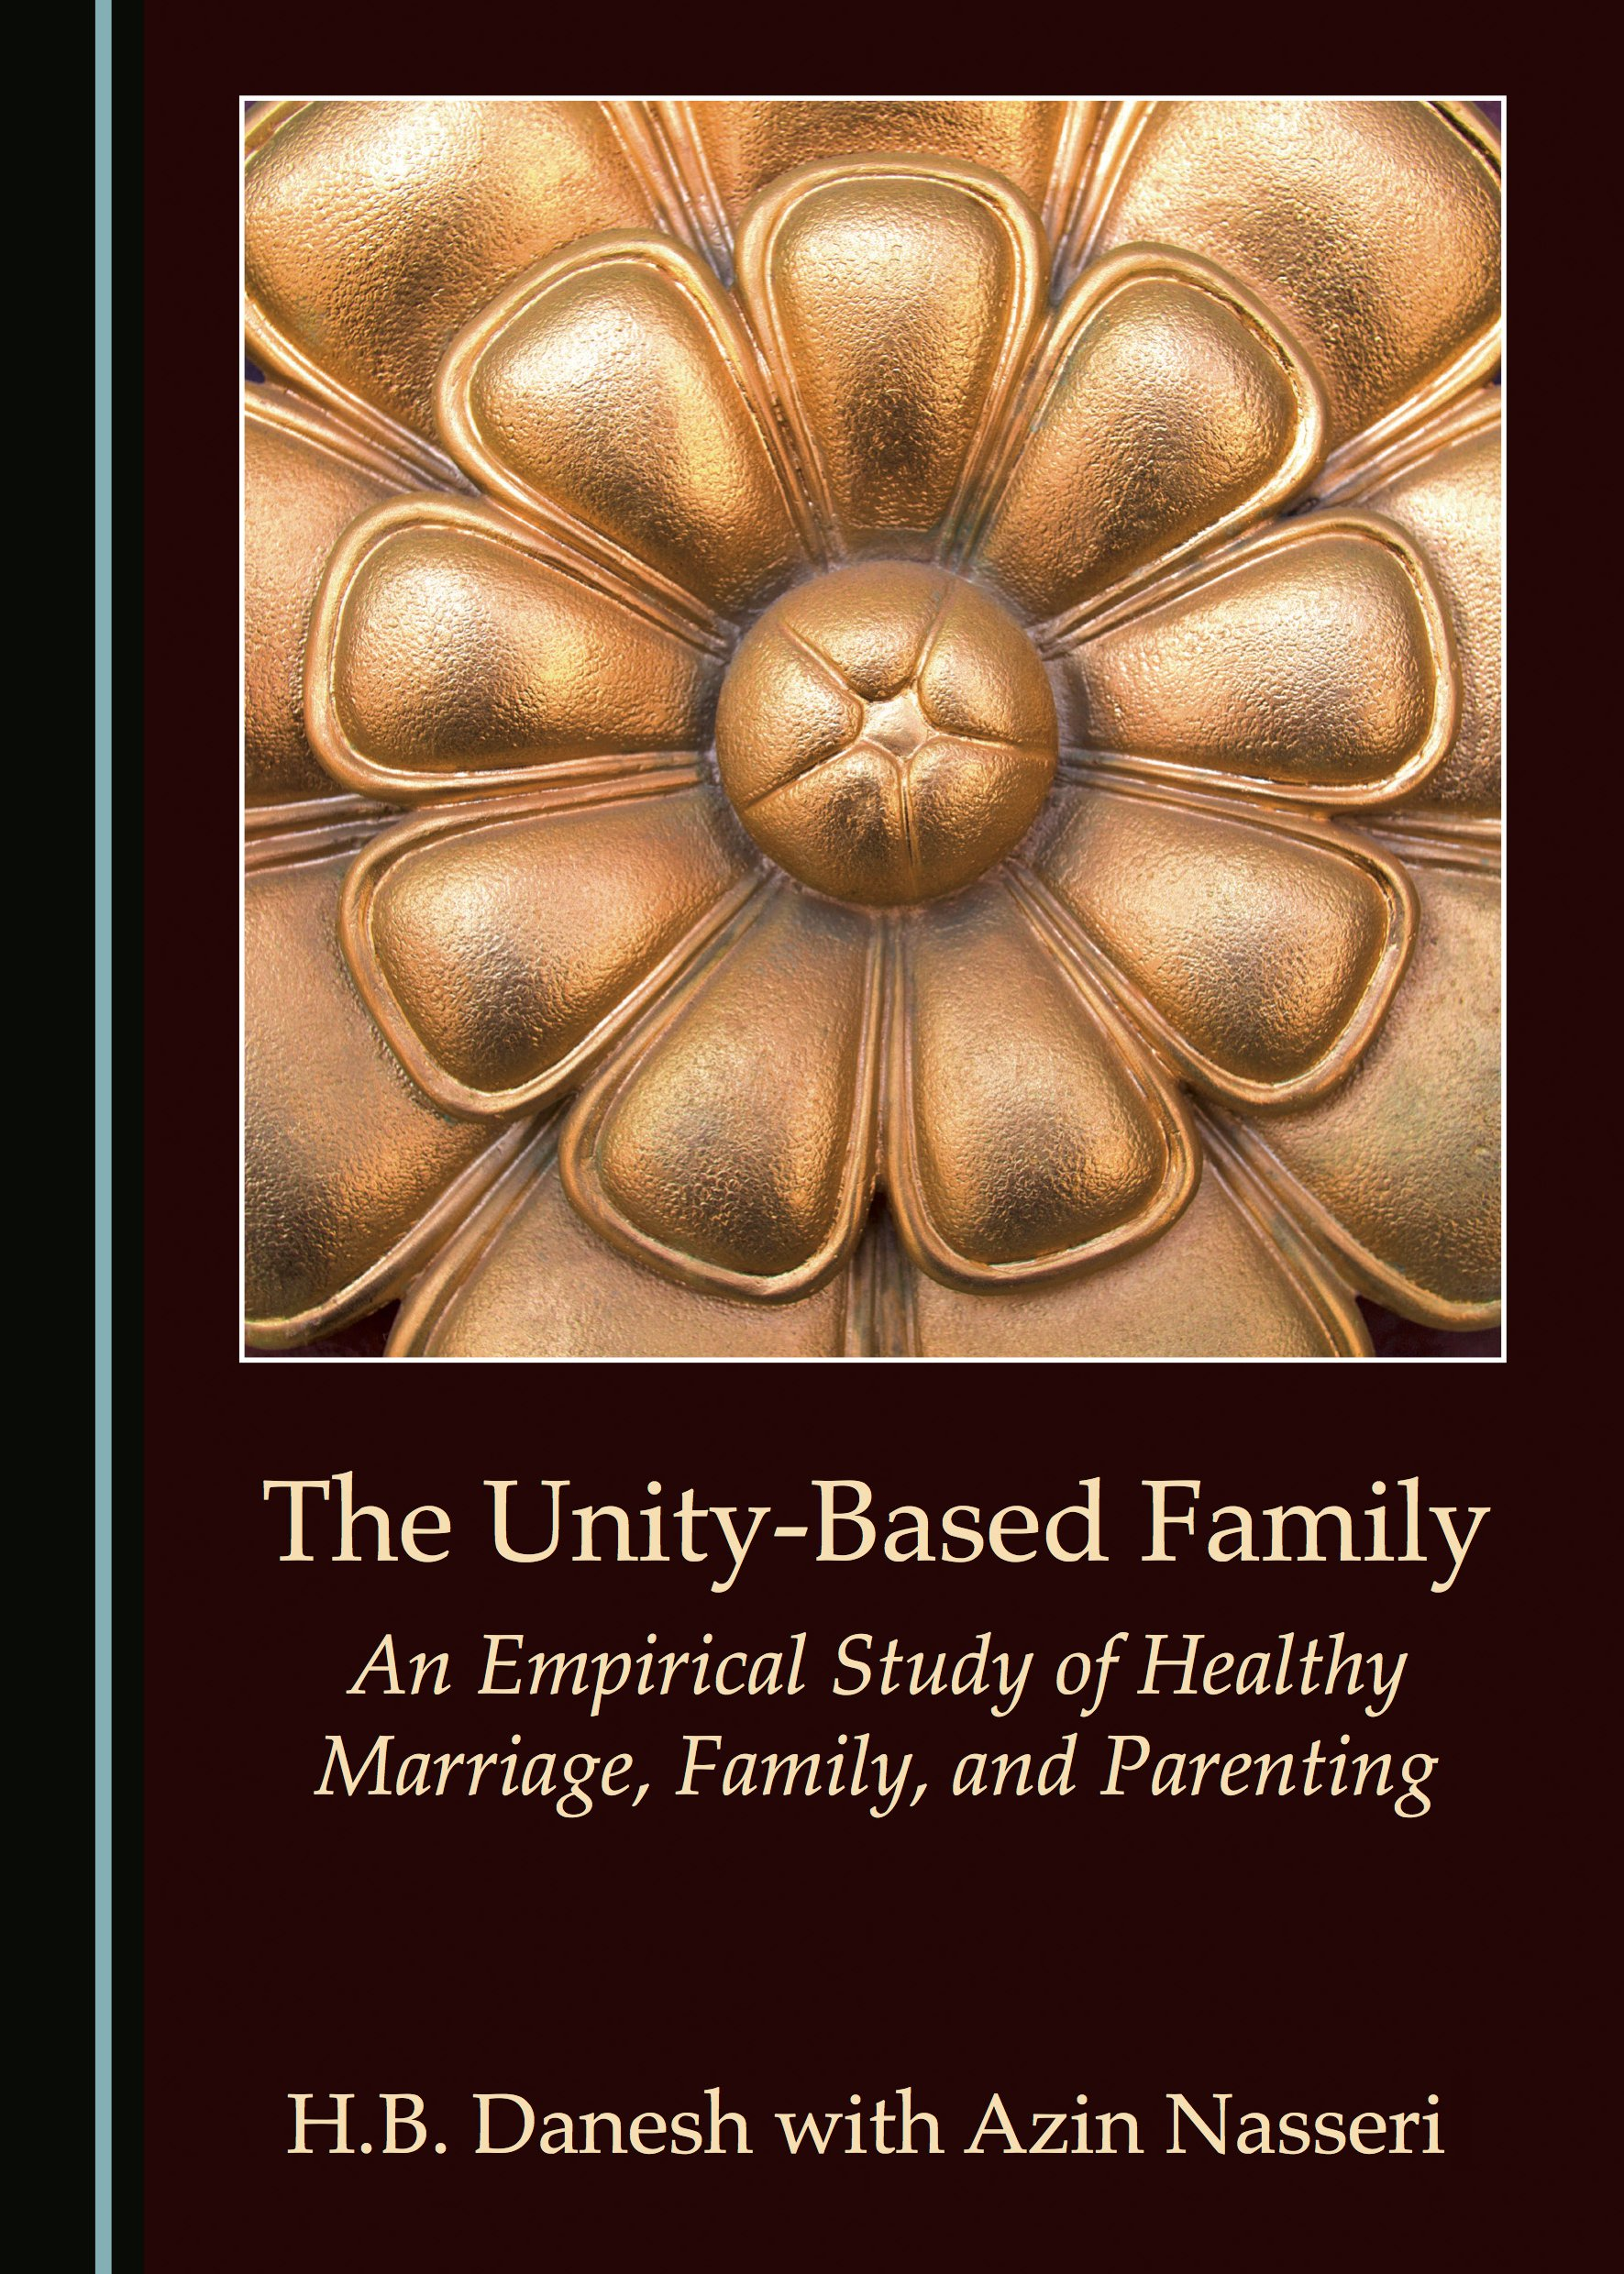 The Unity-Based Family: An Empirical Study of Healthy Marriage, Family, and Parenting